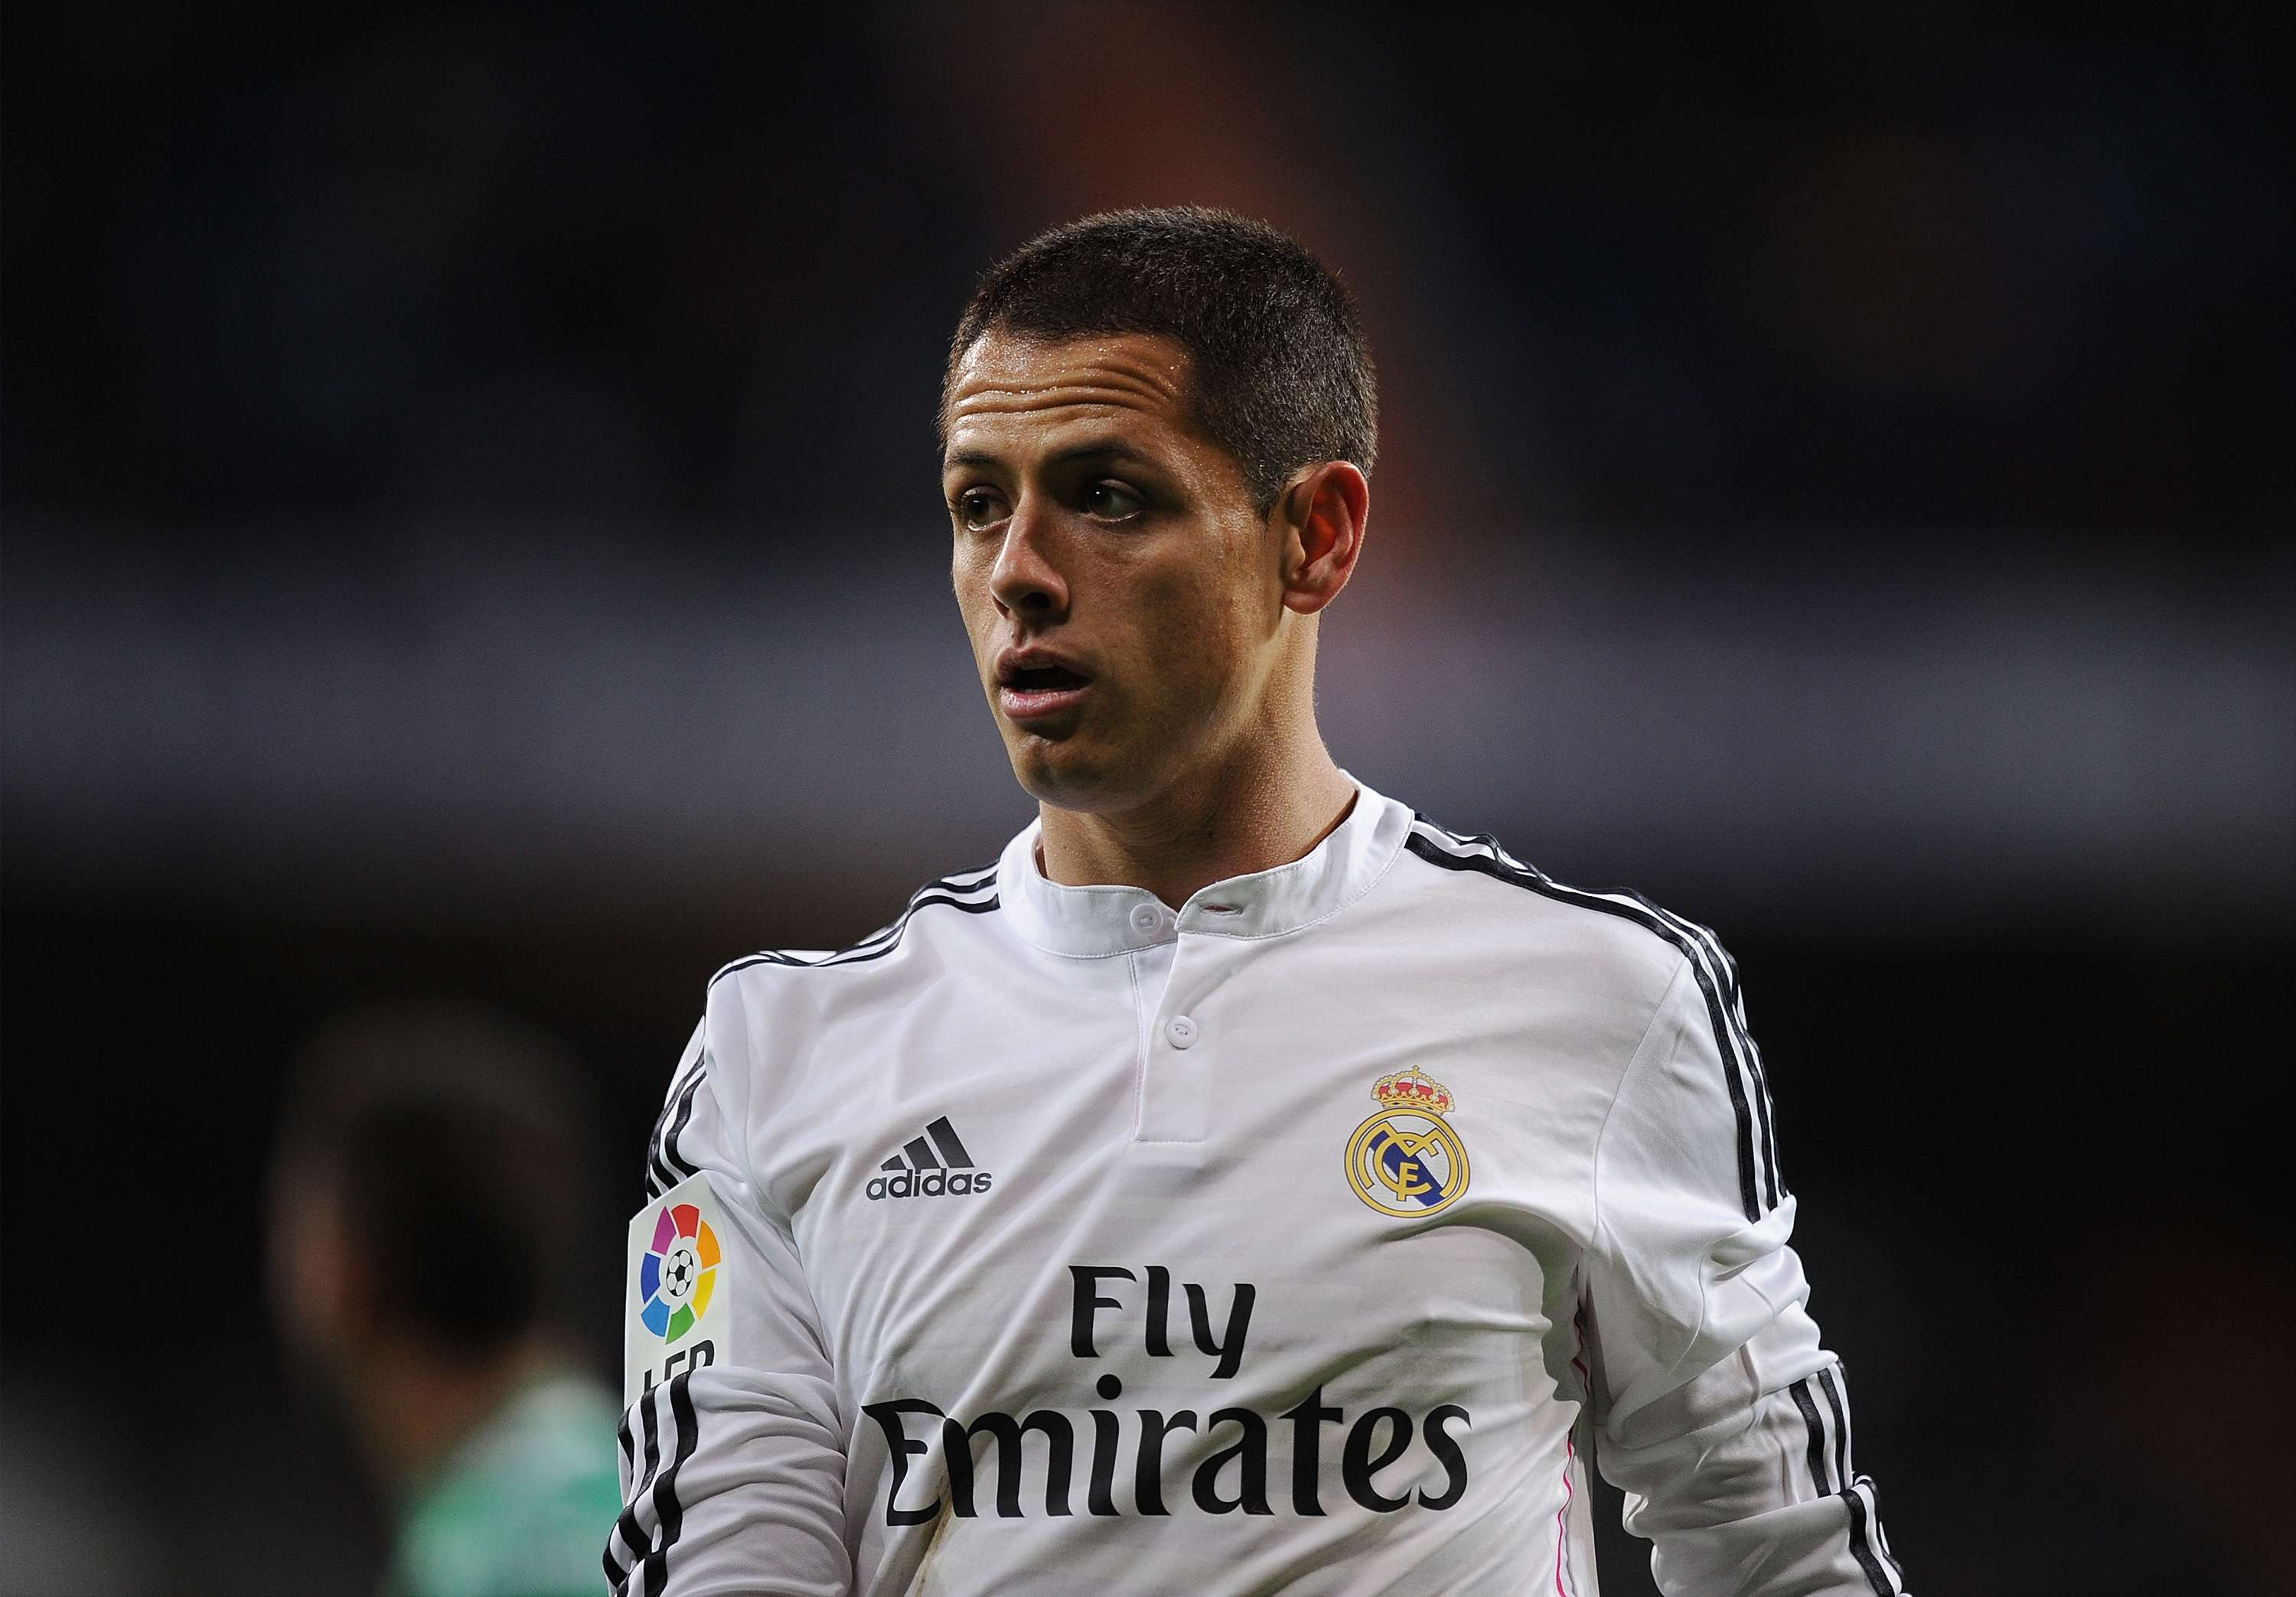 Chicharito se planteó su salida del Real Madrid. Foto: Getty Images